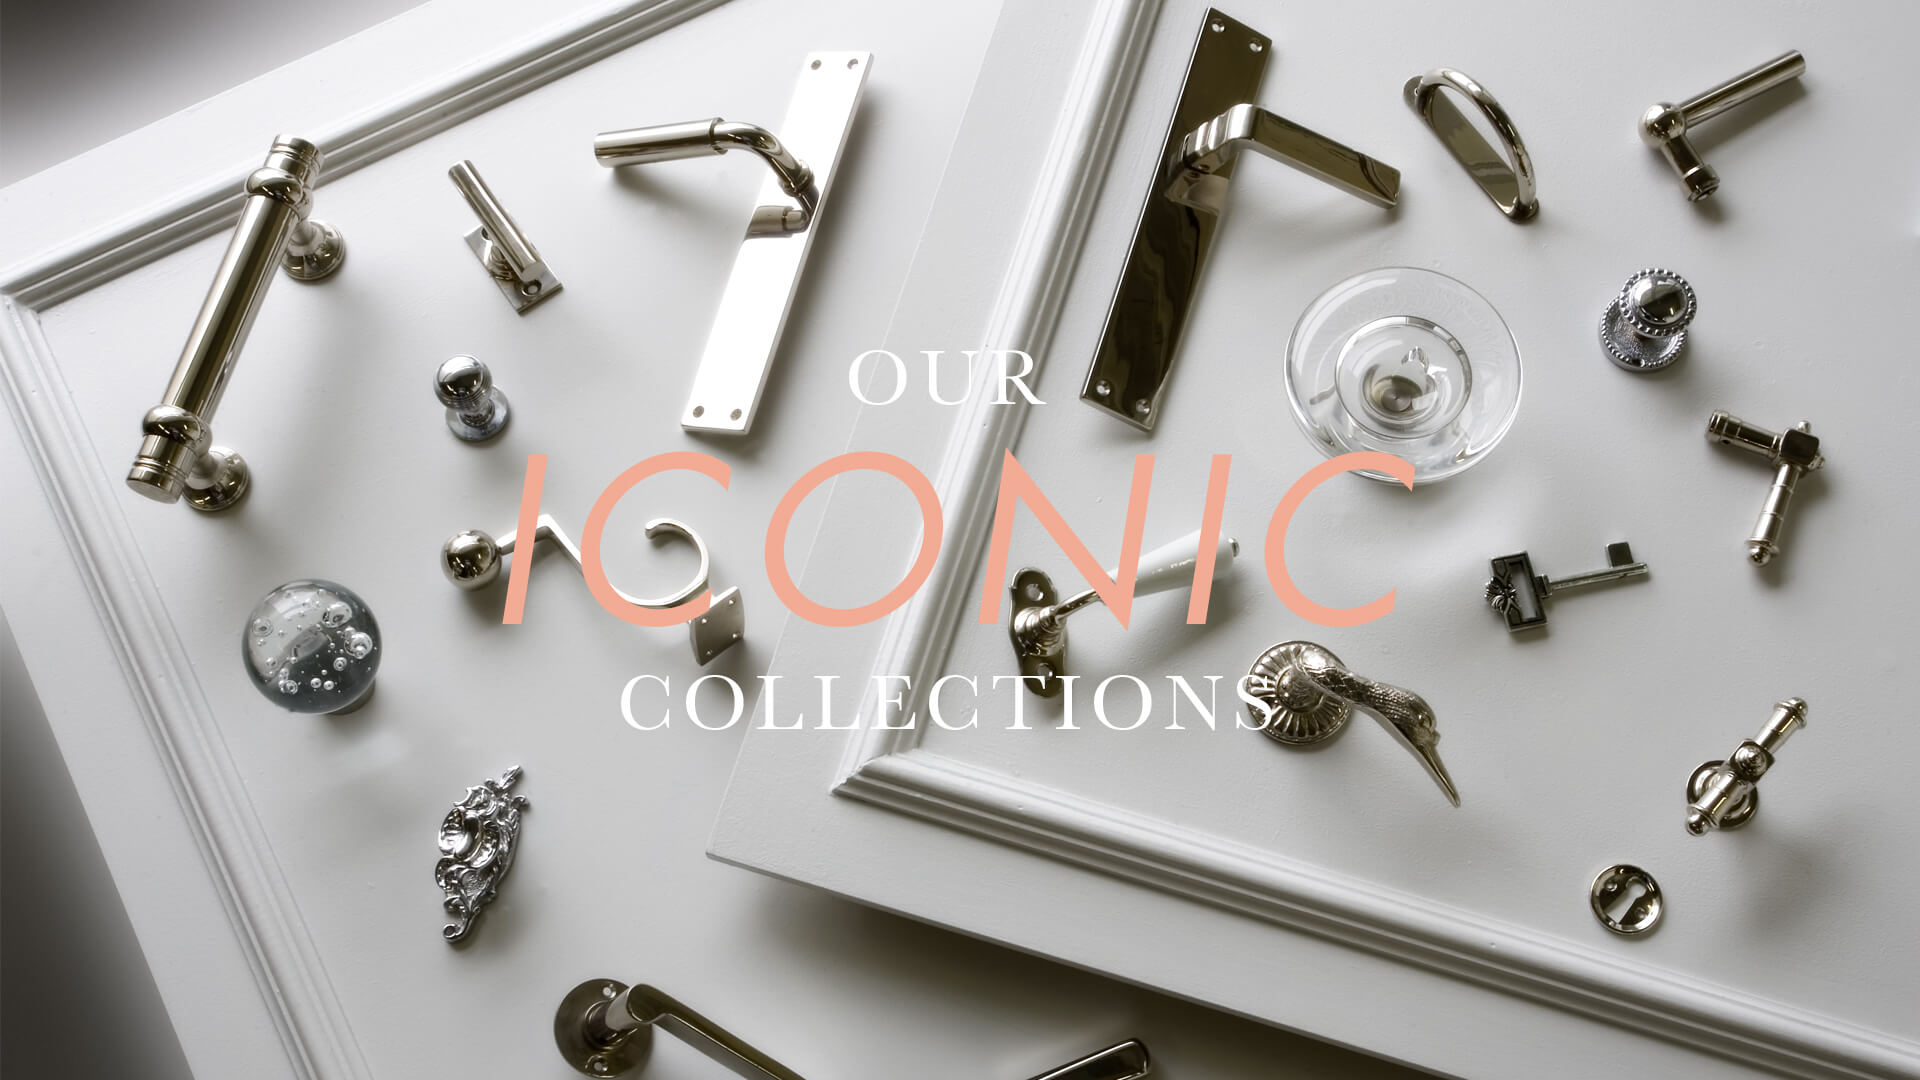 Our Iconic Collections: Lerou R-Collection, Lerou ML-Collection, Lerou Chemin De Fer, Lerou Taps, Lerou W-Collection, Lerou ML-Inox, Manufactur Lerou, Manufaktur Lerou, Bespoke Casting. Onze iconische collecties: Lerou R-Collectie, Lerou ML-Collectie, Lerou Chemin De Fer, Lerou Taps, Lerou W-Collectie, Lerou ML-Inox, Manufactur Lerou, Manufaktur Lerou.